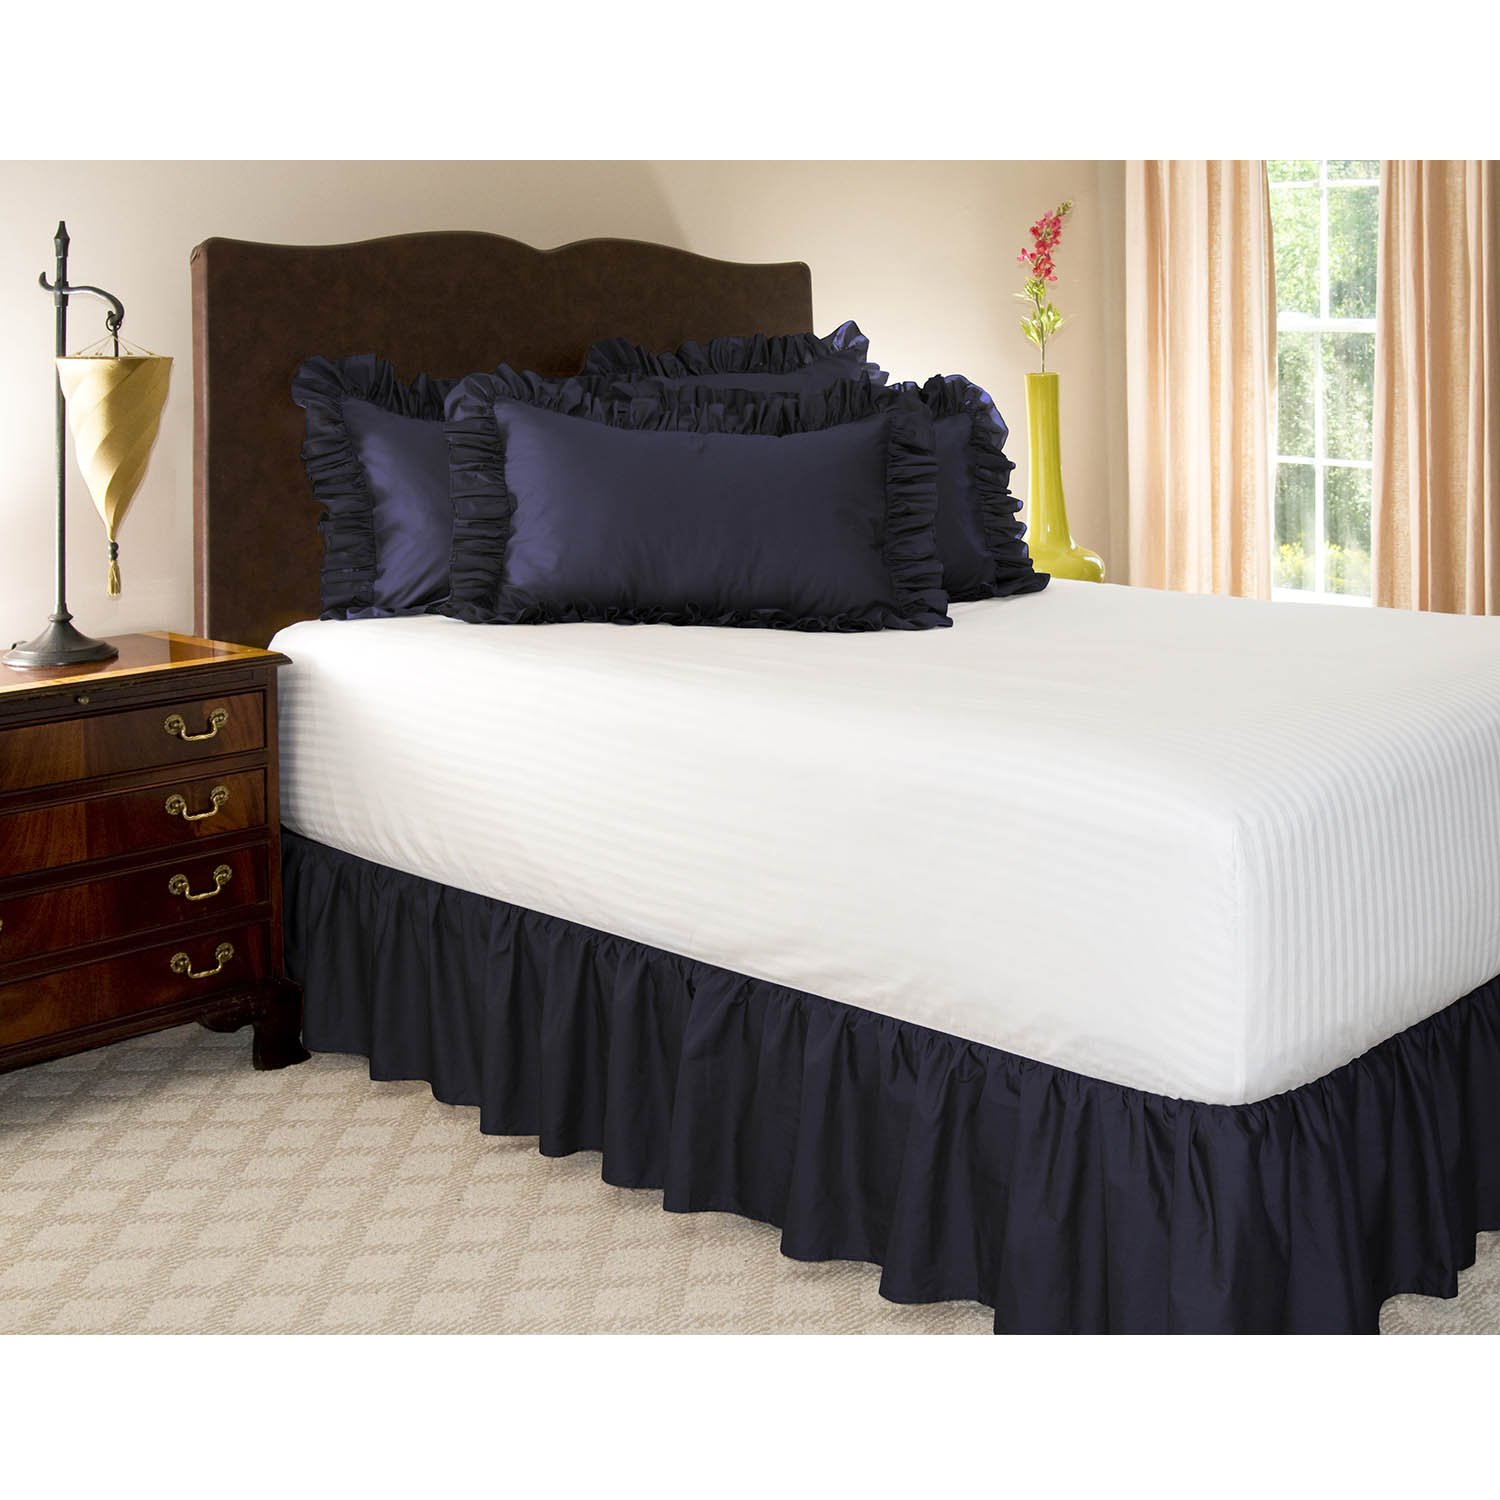 Amazon Com Ruffled Bedskirt Twin Navy Blue 18 Inch Bed Skirt